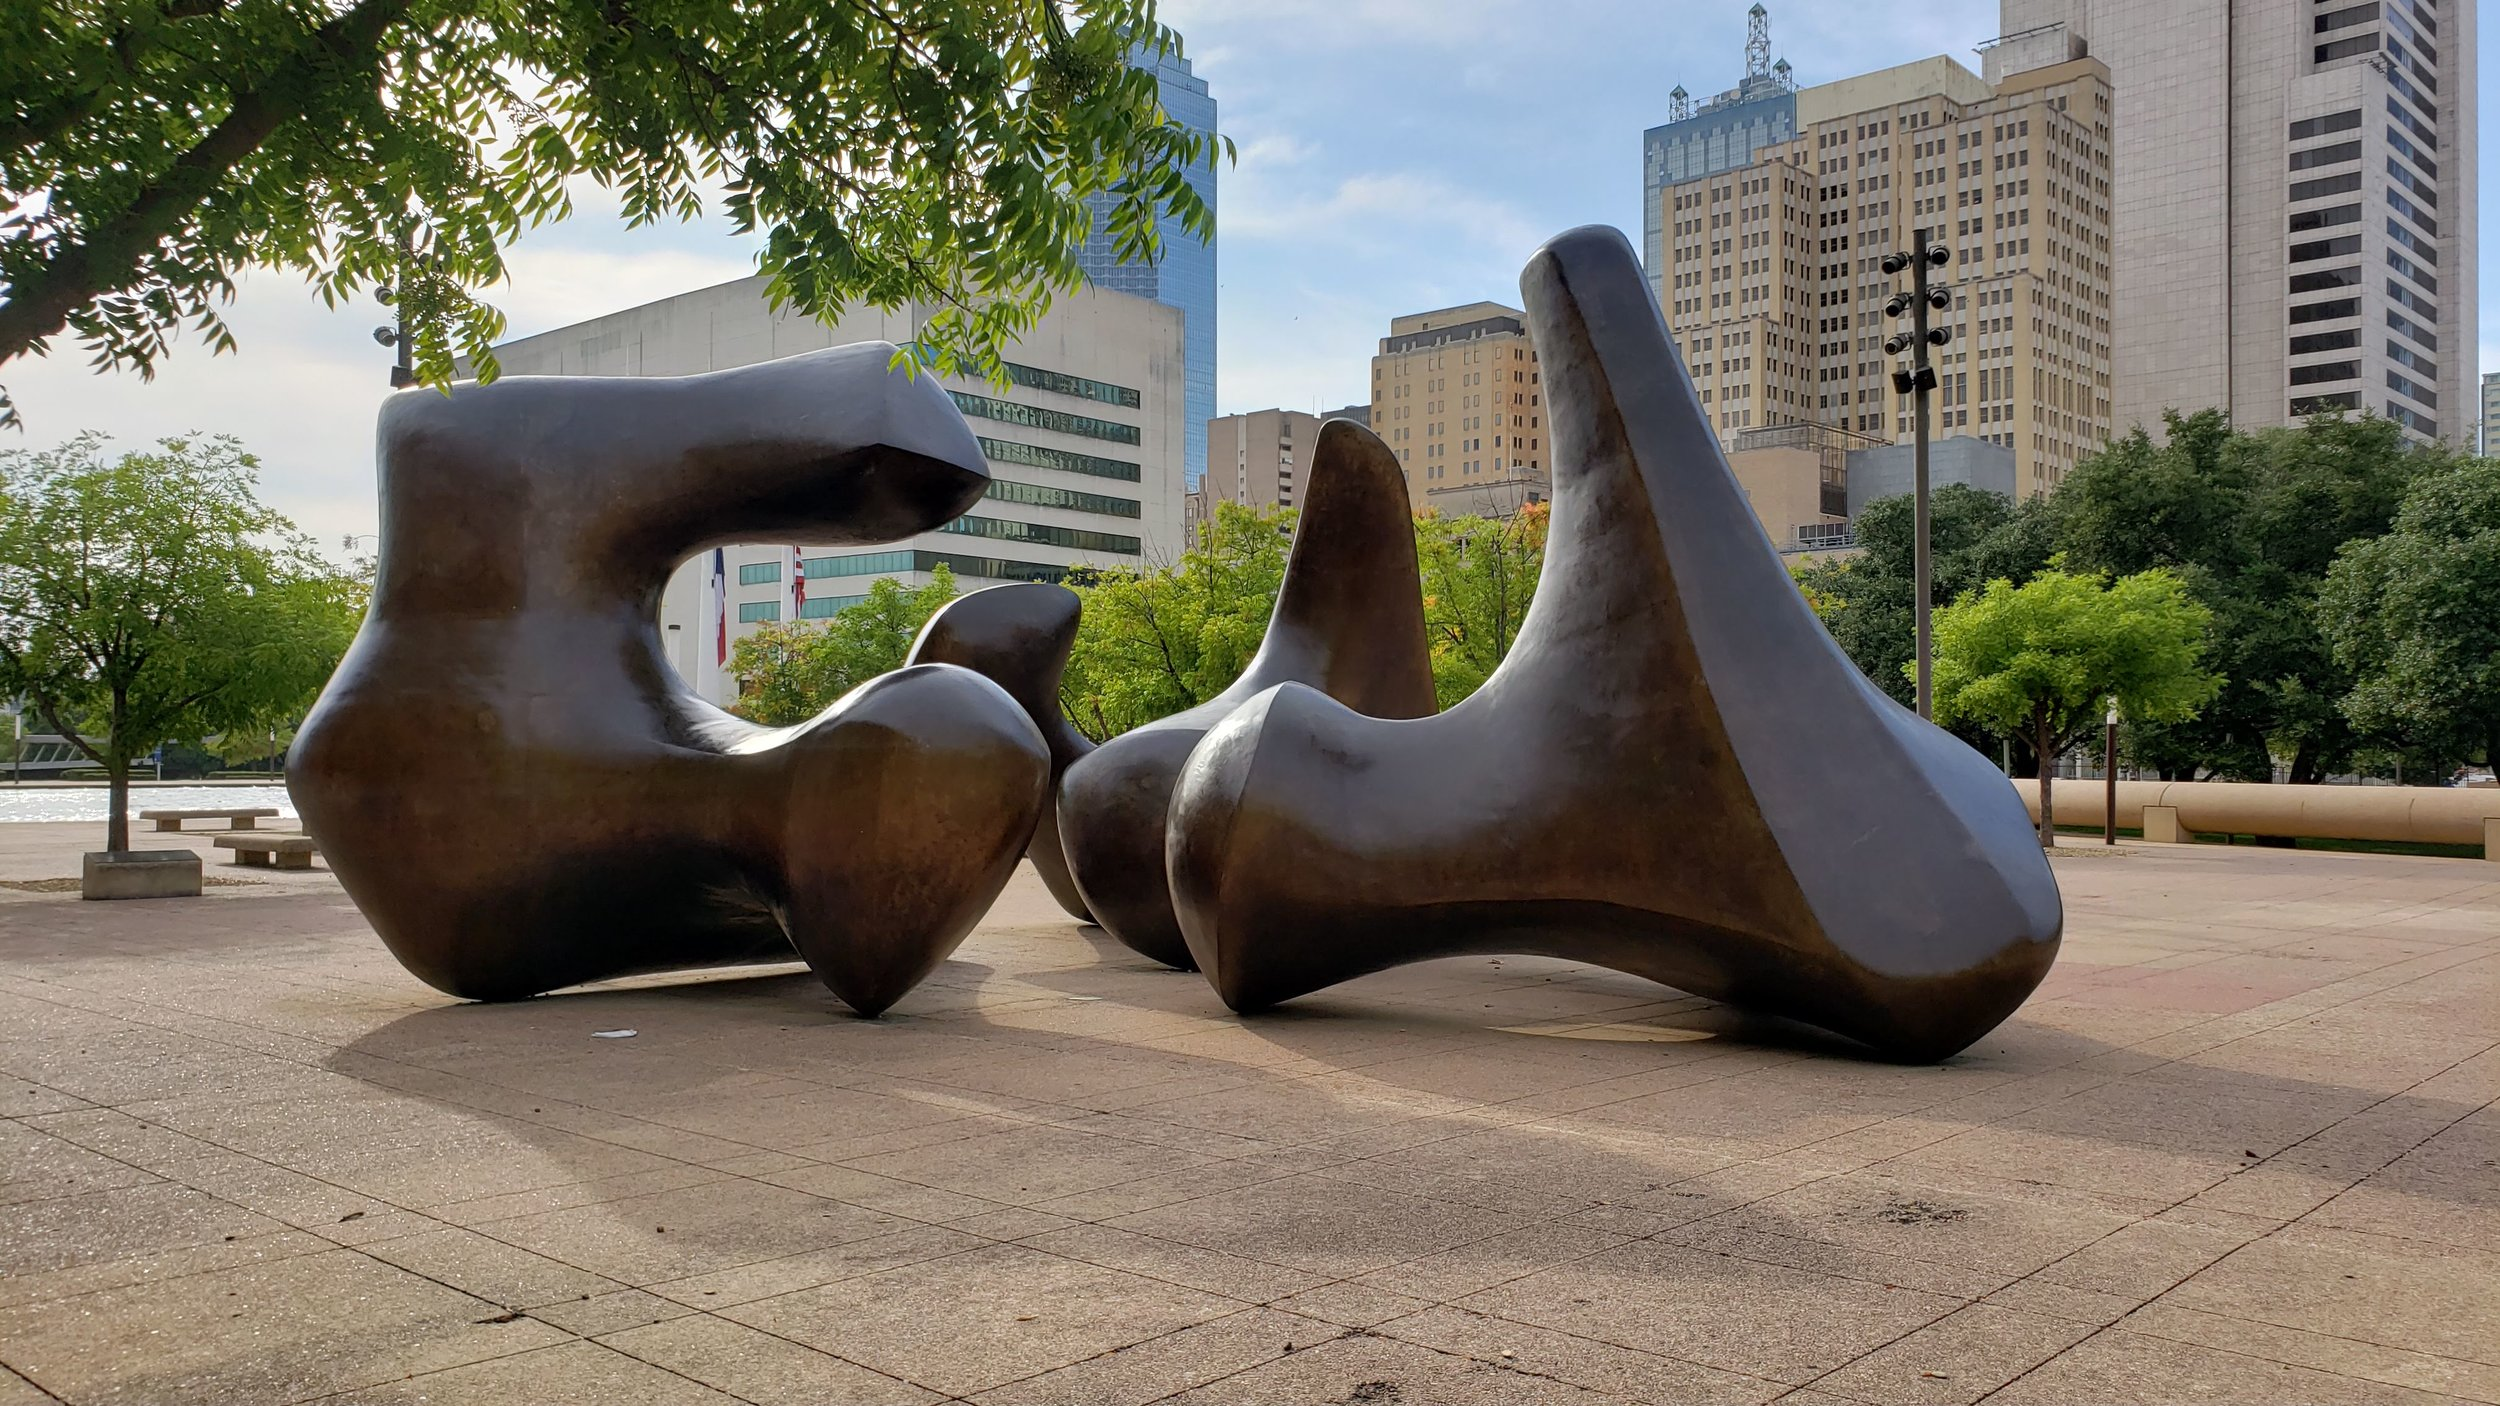 Sculpture in Dallas City Hall Courtyard